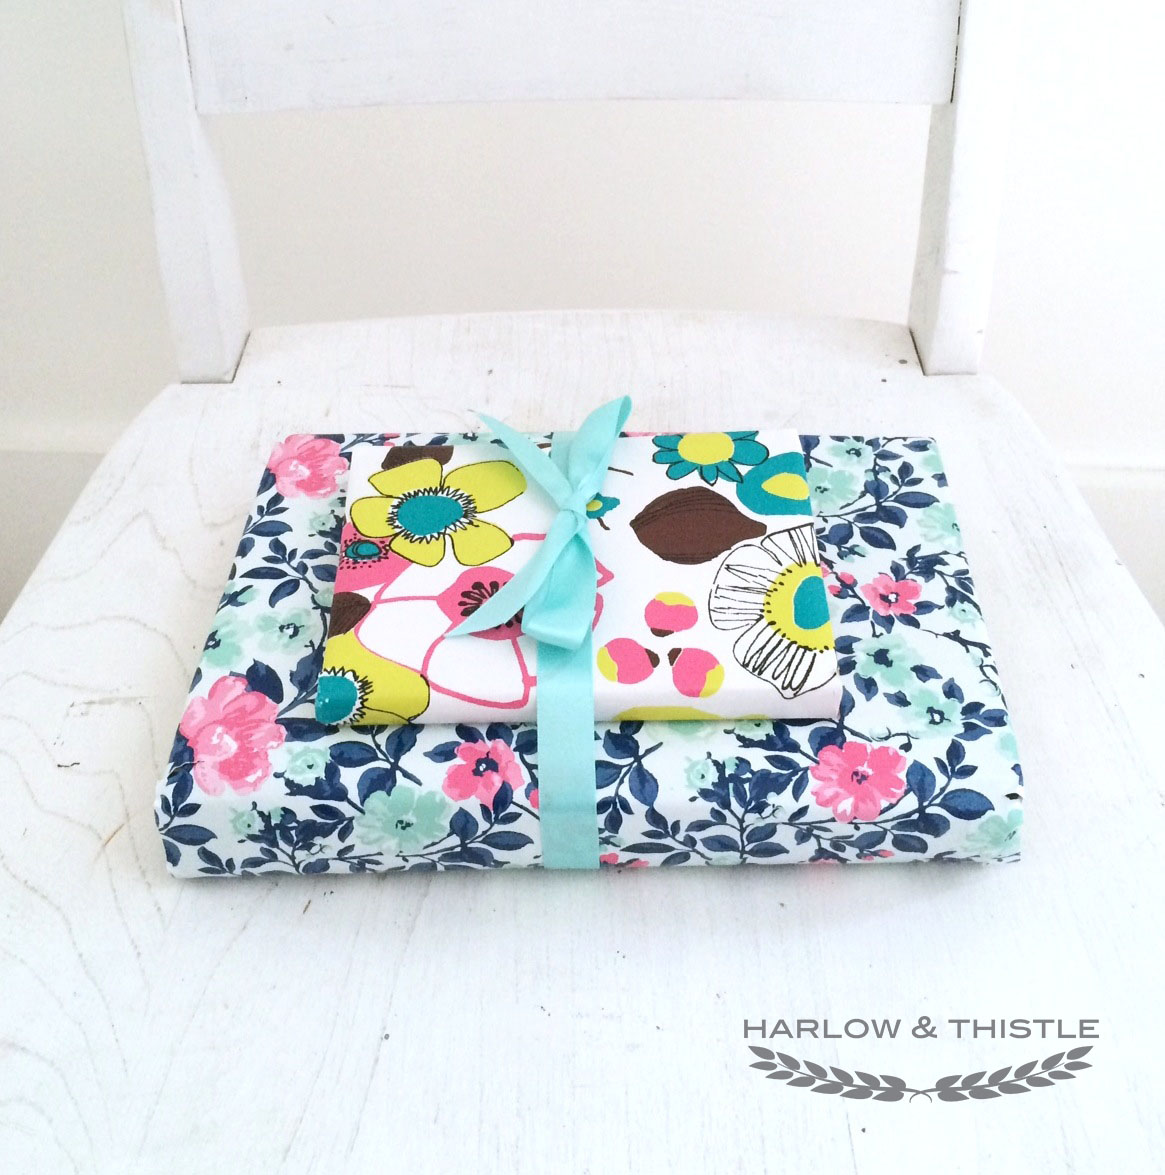 Book Cover Wrapping Paper : Diy wrapping paper book cover harlow thistle home